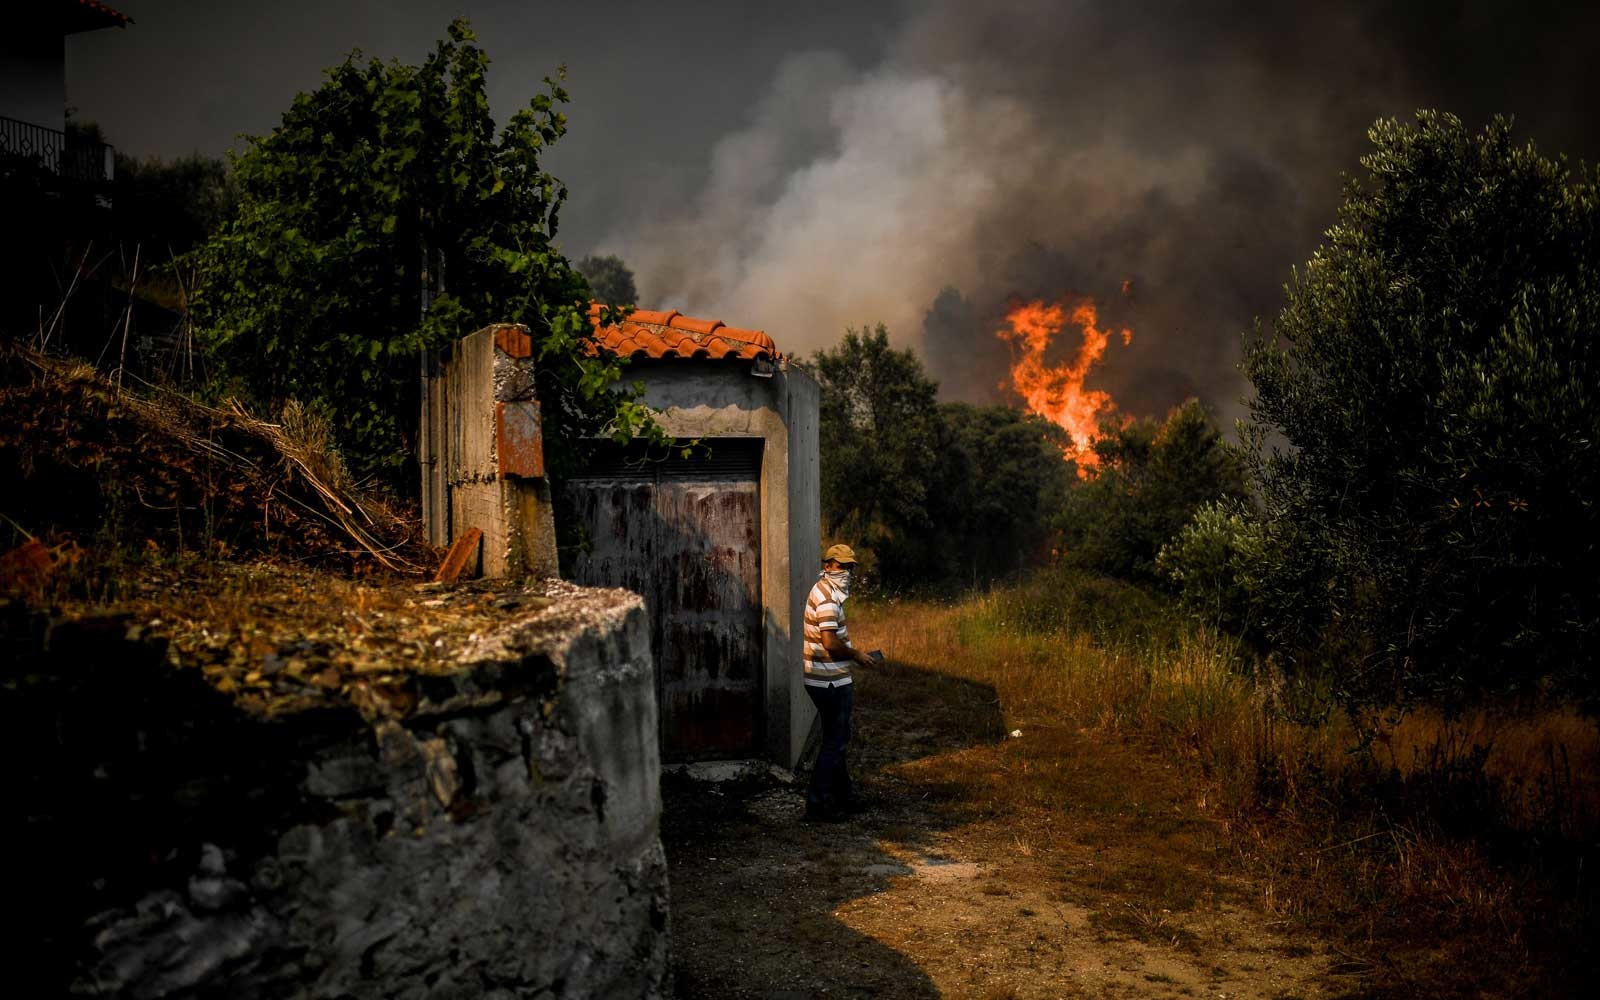 A villager stands near his storage house as a wildfire approaches Roda village in Macao, central Portugal on July 21, 2019.